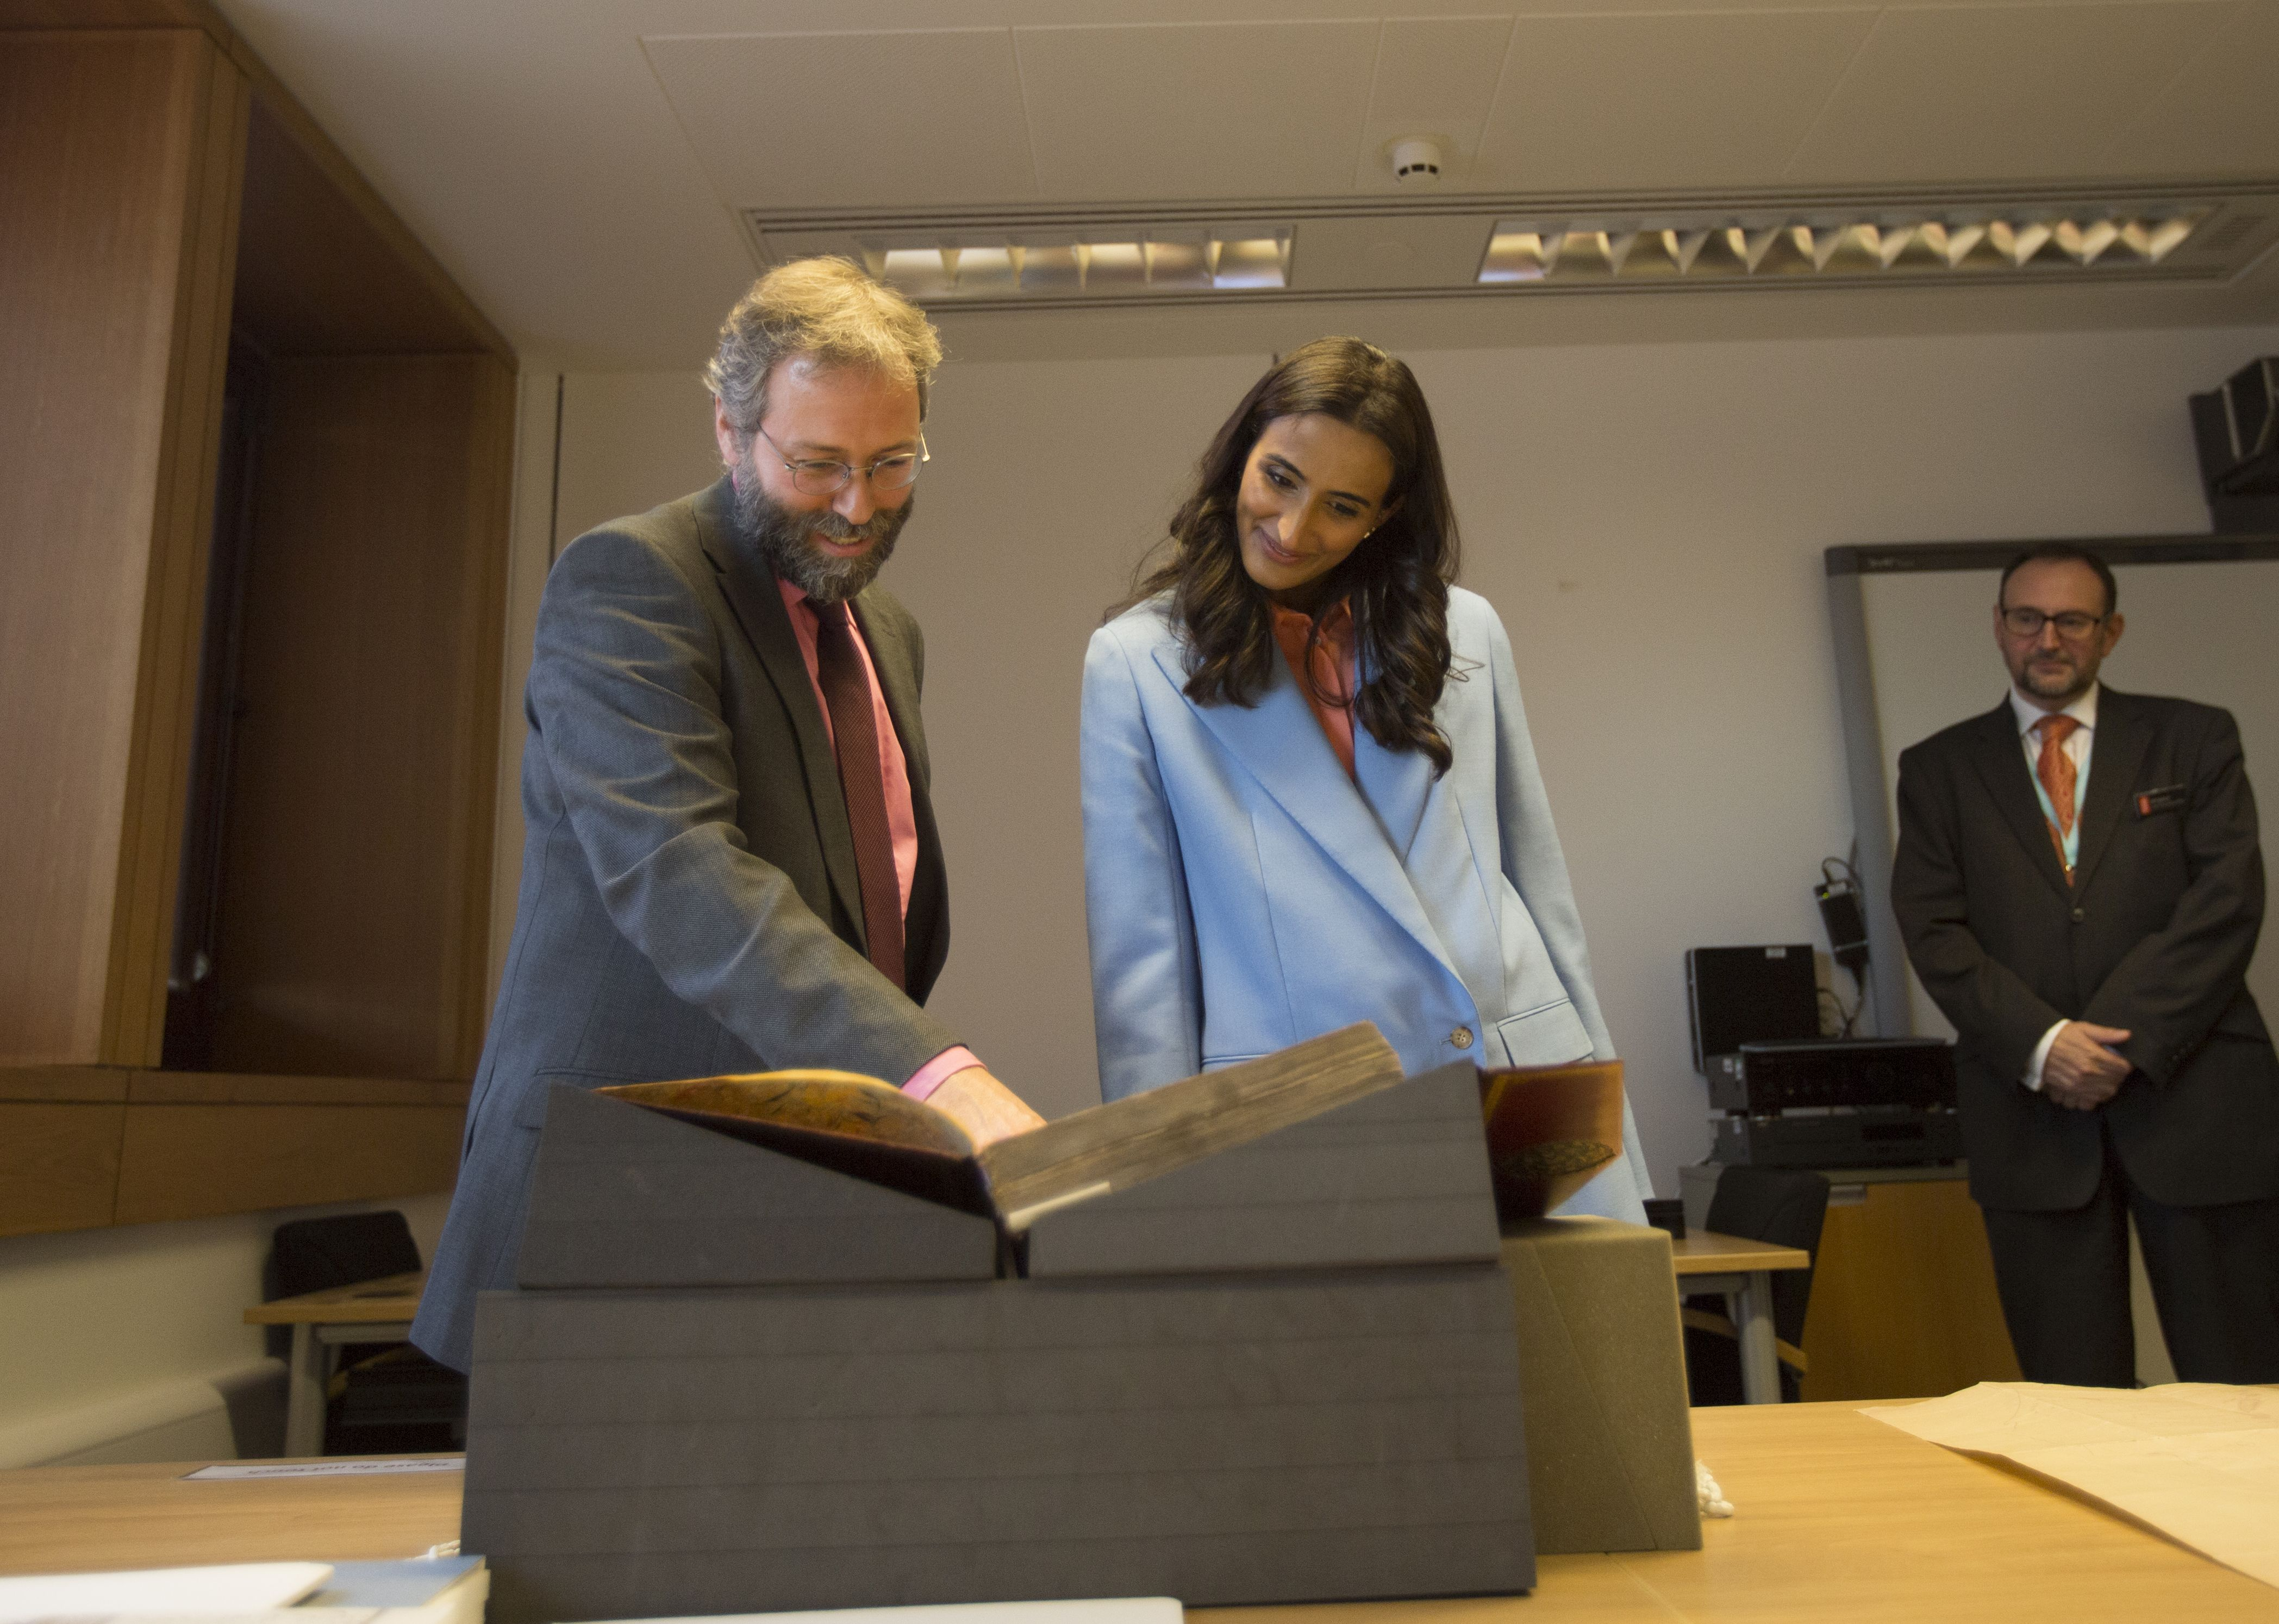 Her Excellency Sheikha Hind bint Hamad Al Thani, Vice Chairperson and CEO of Qatar Foundation, attended a reception at the British Library to commemorate Qatar Digital Library's (QDL) four-year anniversary. Dr Bink Hallum, Arabic Scientific Manuscripts Curator shows H.E. a collection item.